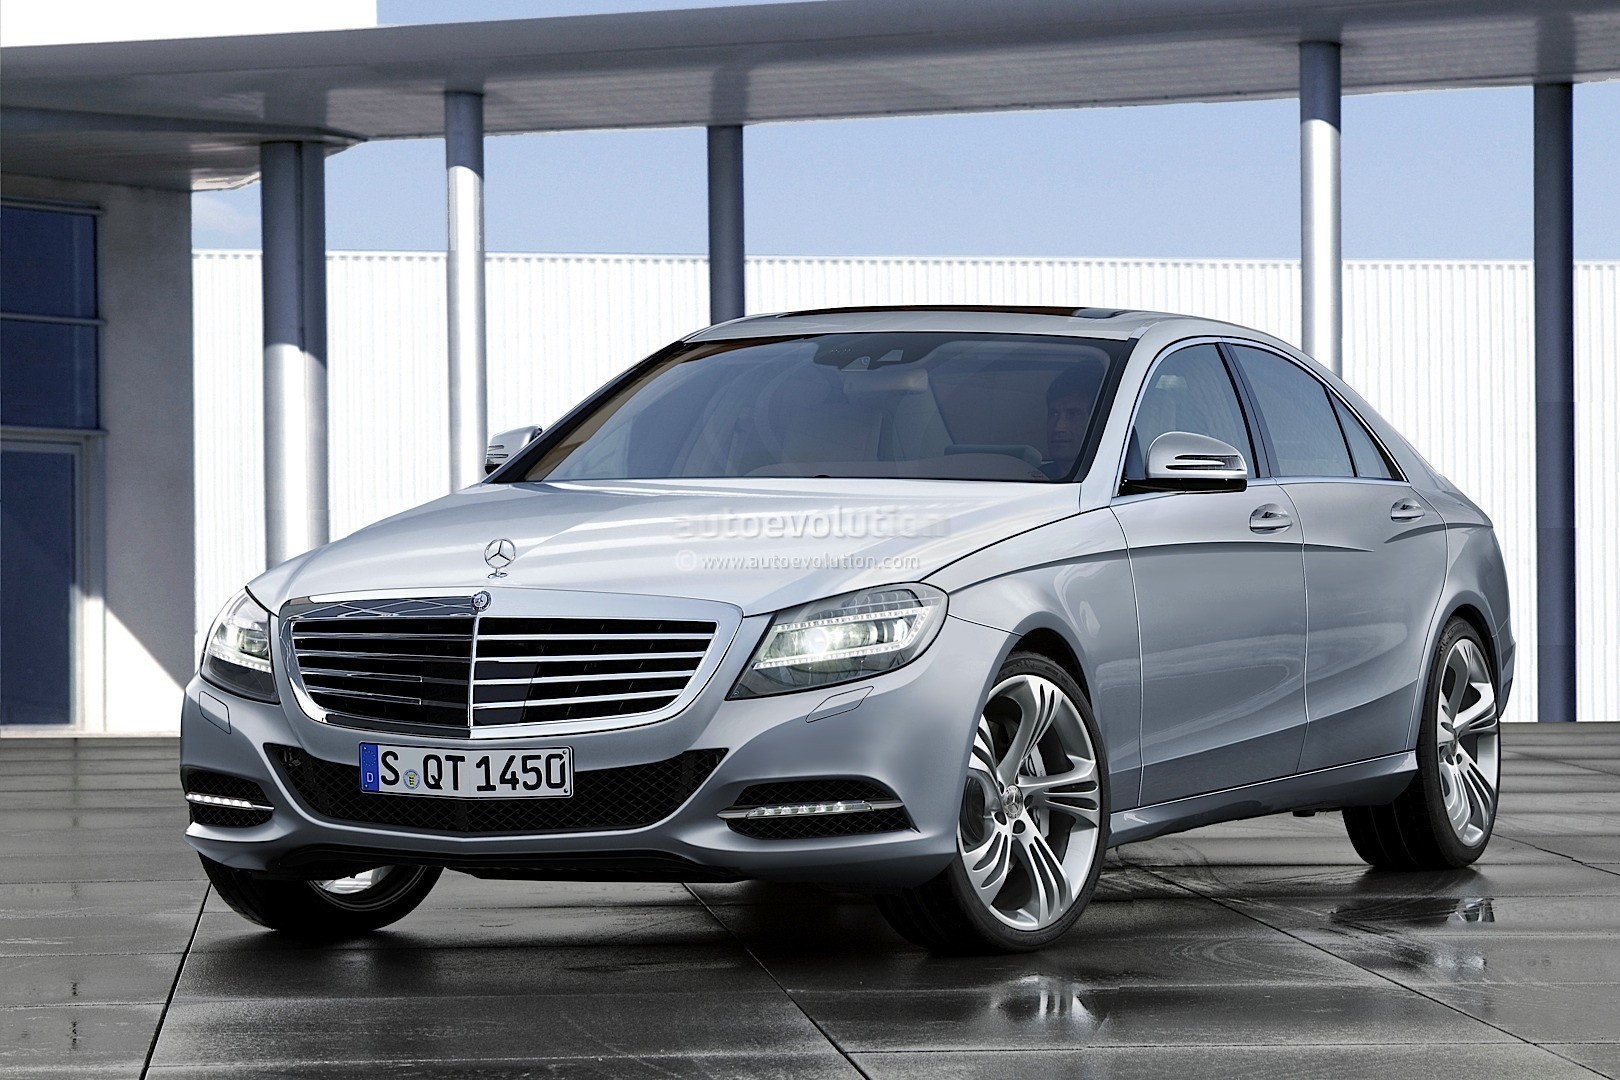 2013 mercedes benz s class information and photos for Mercedes benz 2013 s550